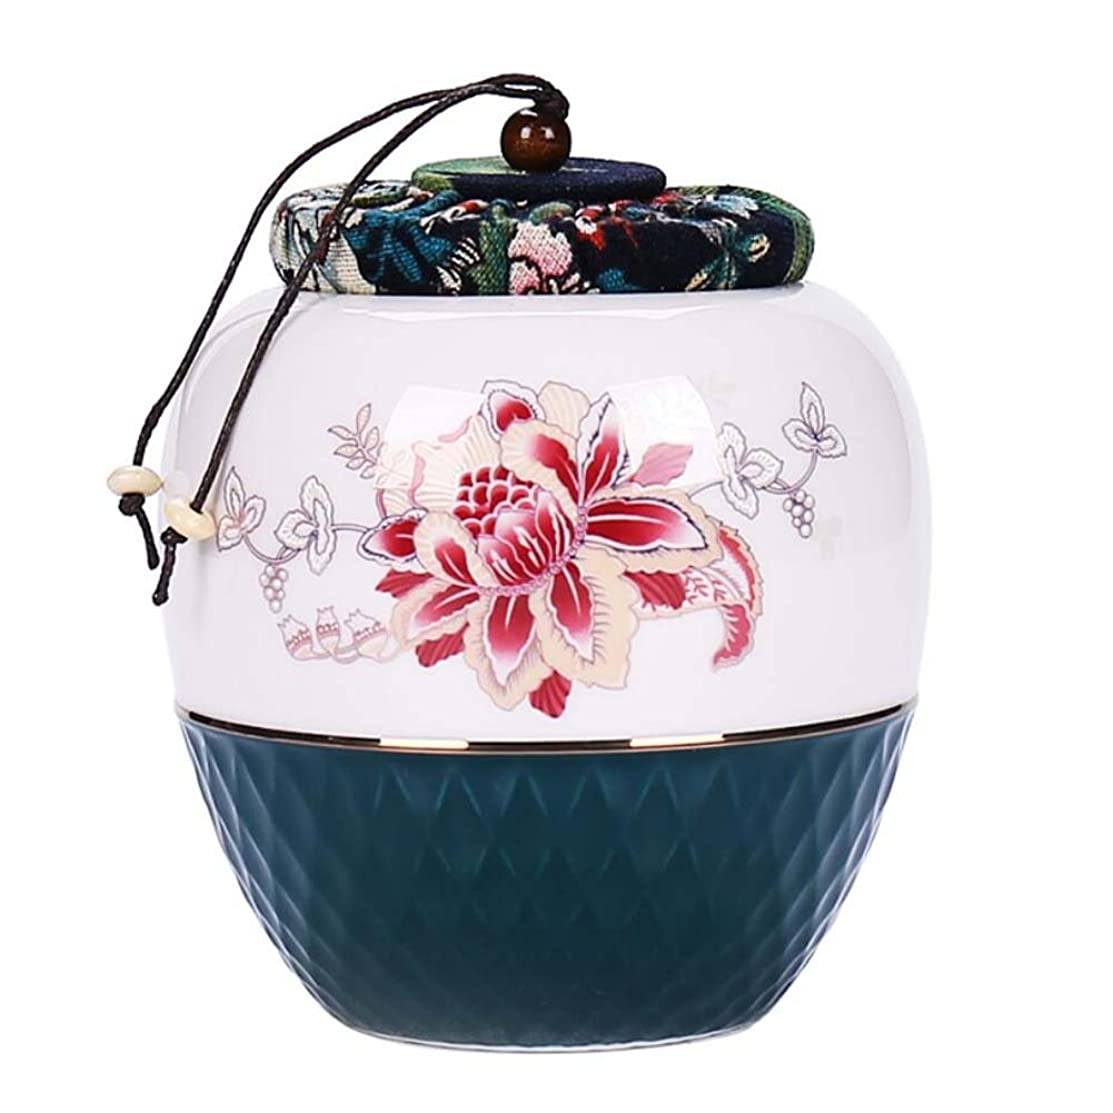 Ceramic Tea Storage Container Kitchen Storage Canister Jar for Candy Coffee - 11 x 14 cm/4.3 x 5.5 inches - 33